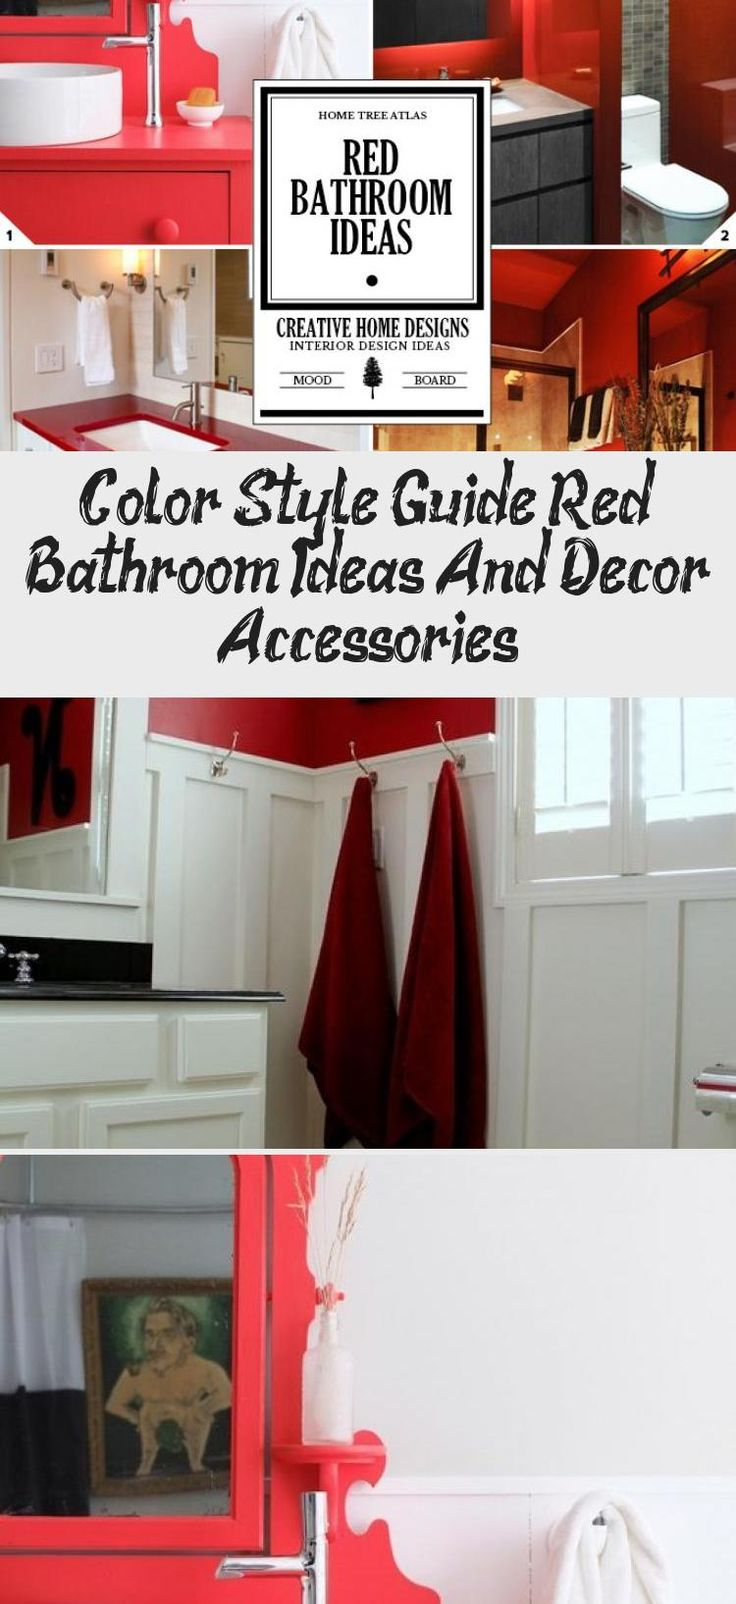 color style guide red bathroom ideas and decor